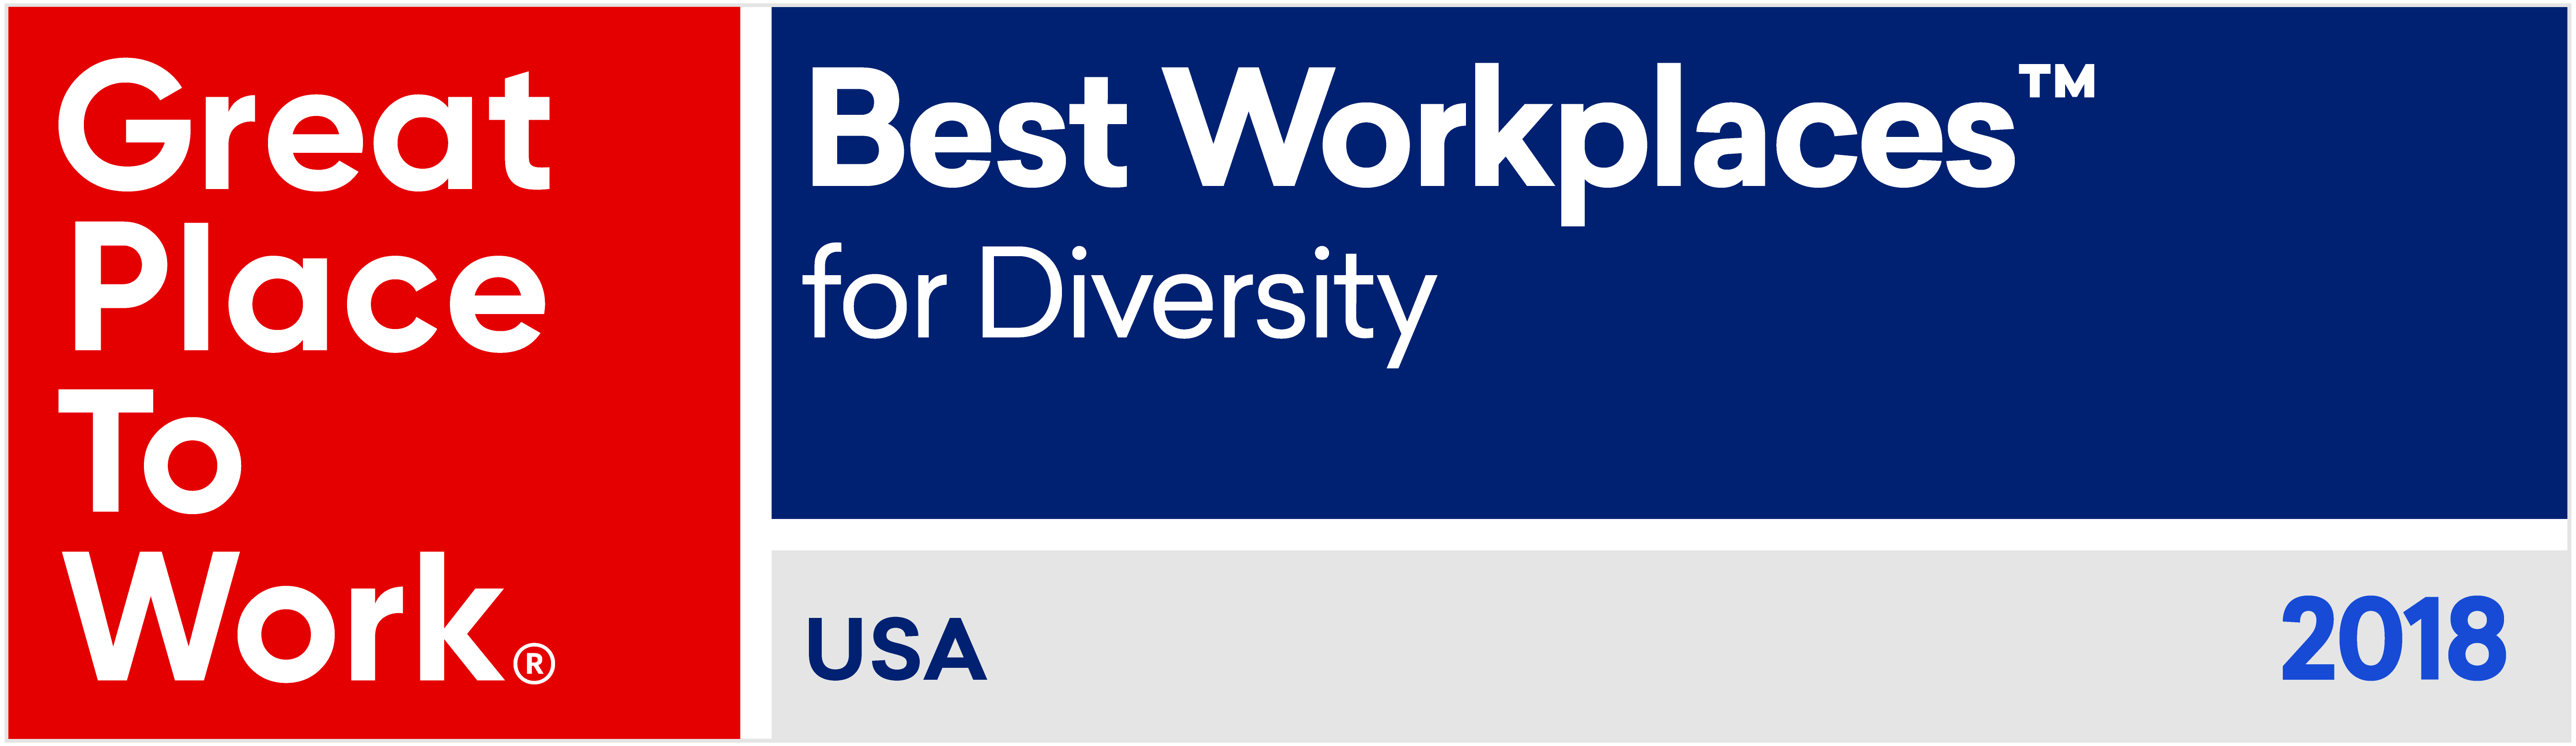 Great Place To Work - Diversity 2018